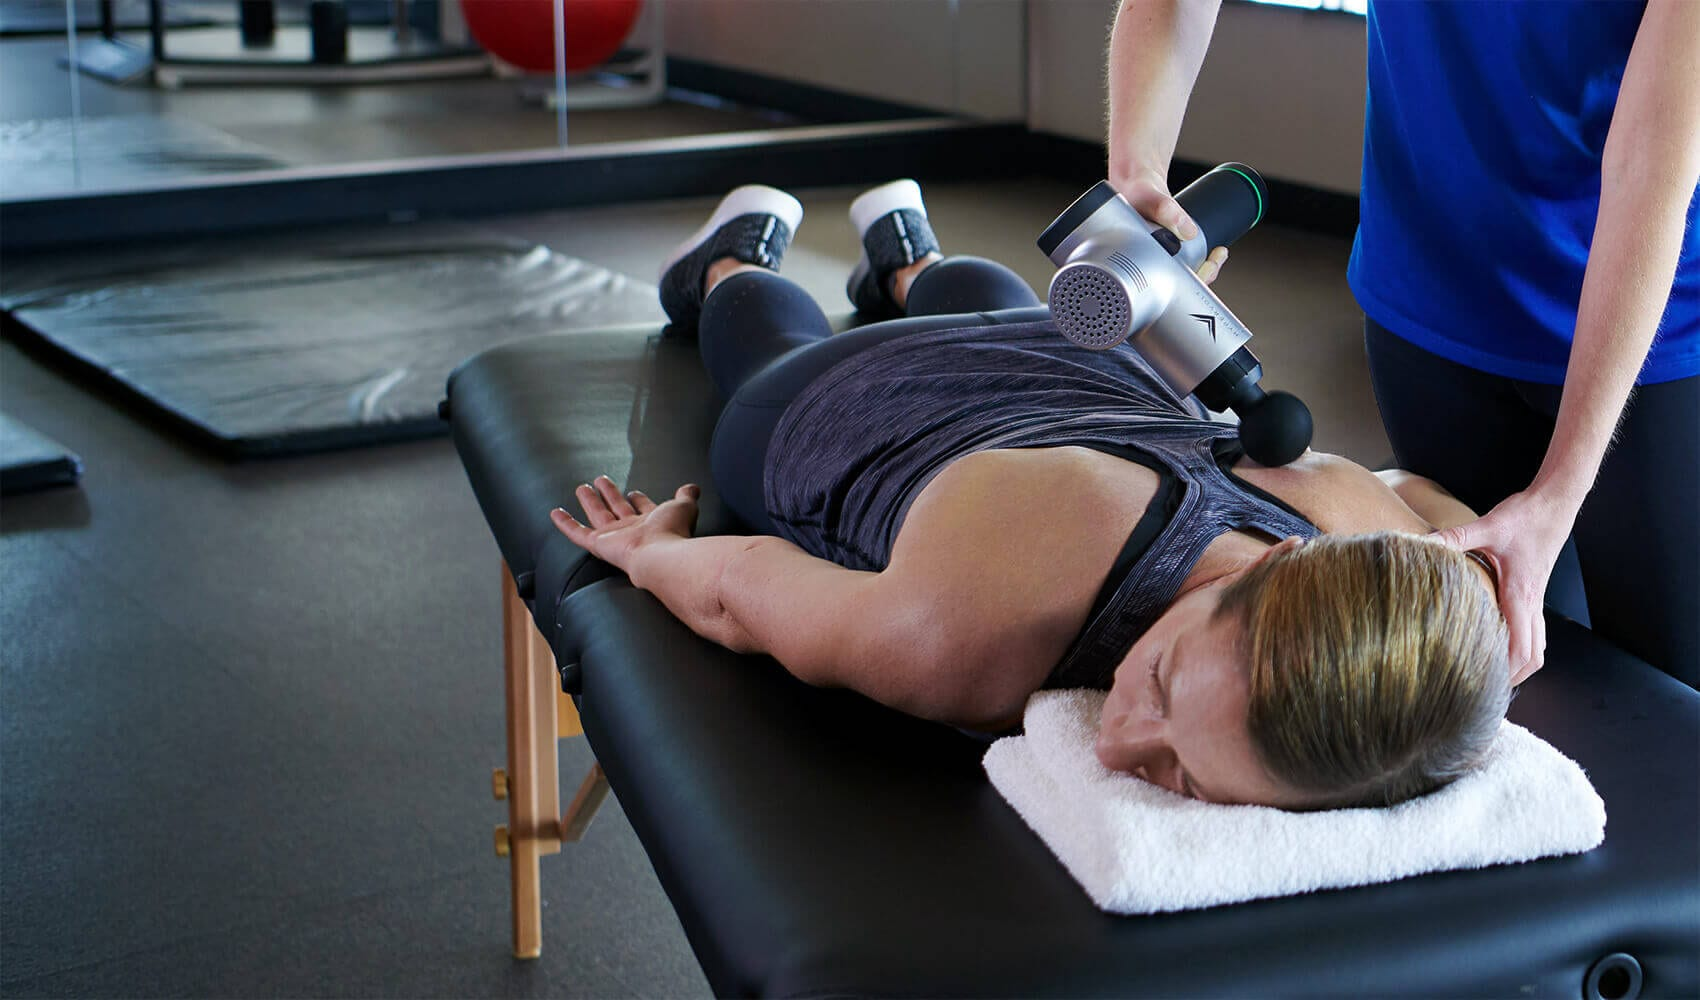 brick bodies gym member receiving massage therapy